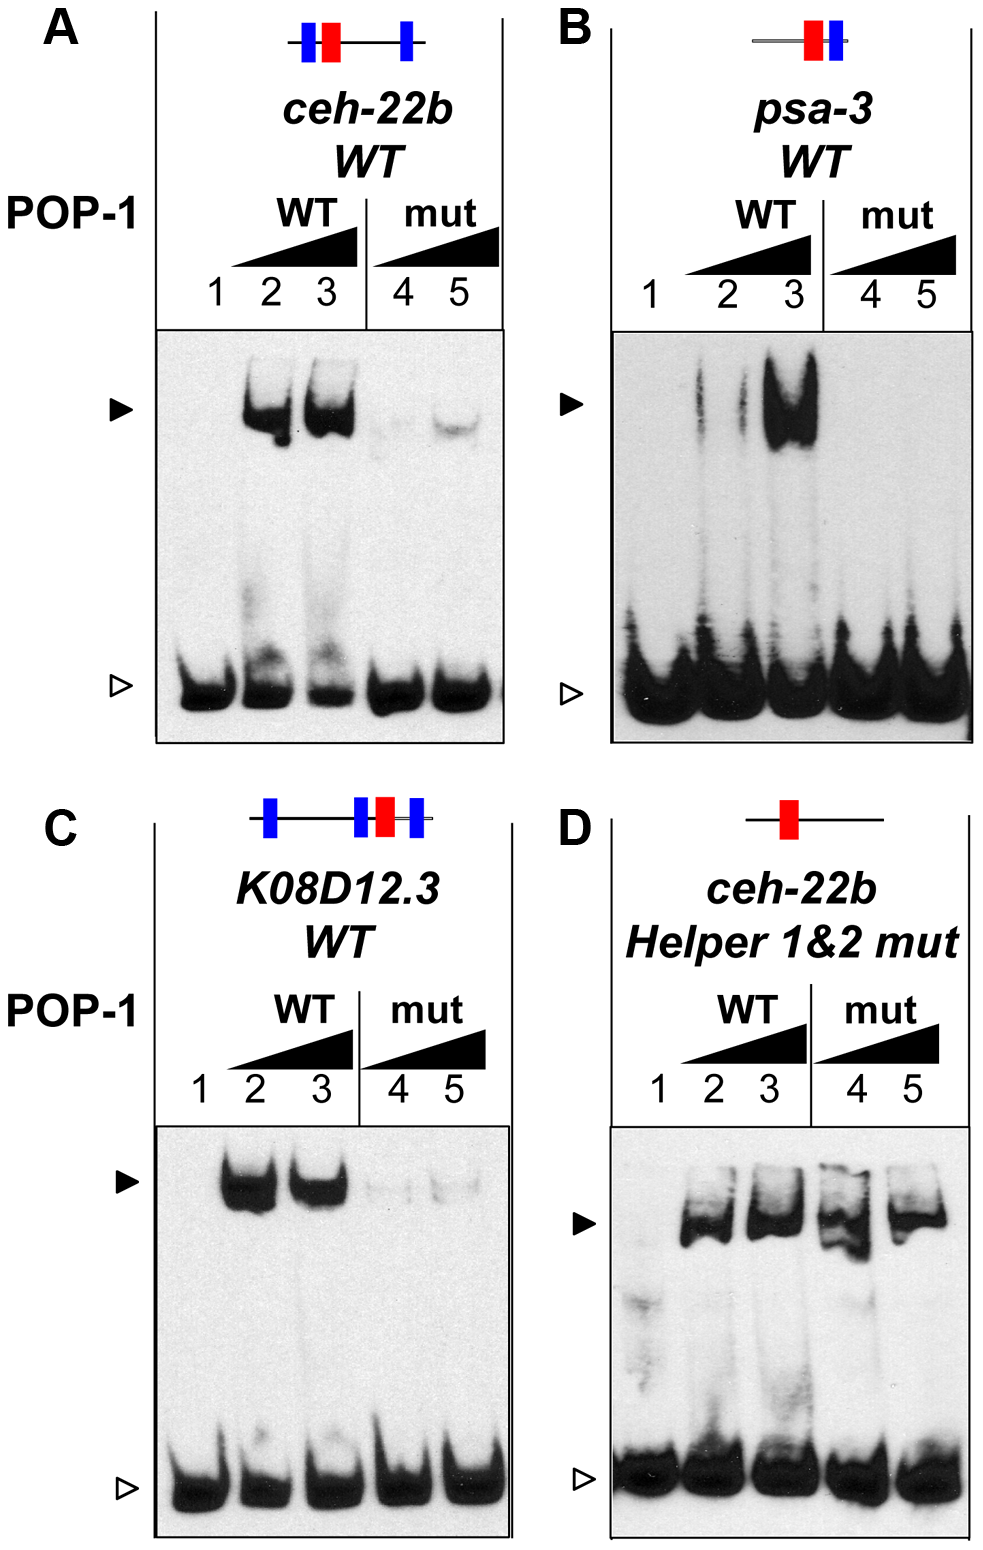 The C-clamp of POP-1 facilitates binding to DNA containing Helper sites.